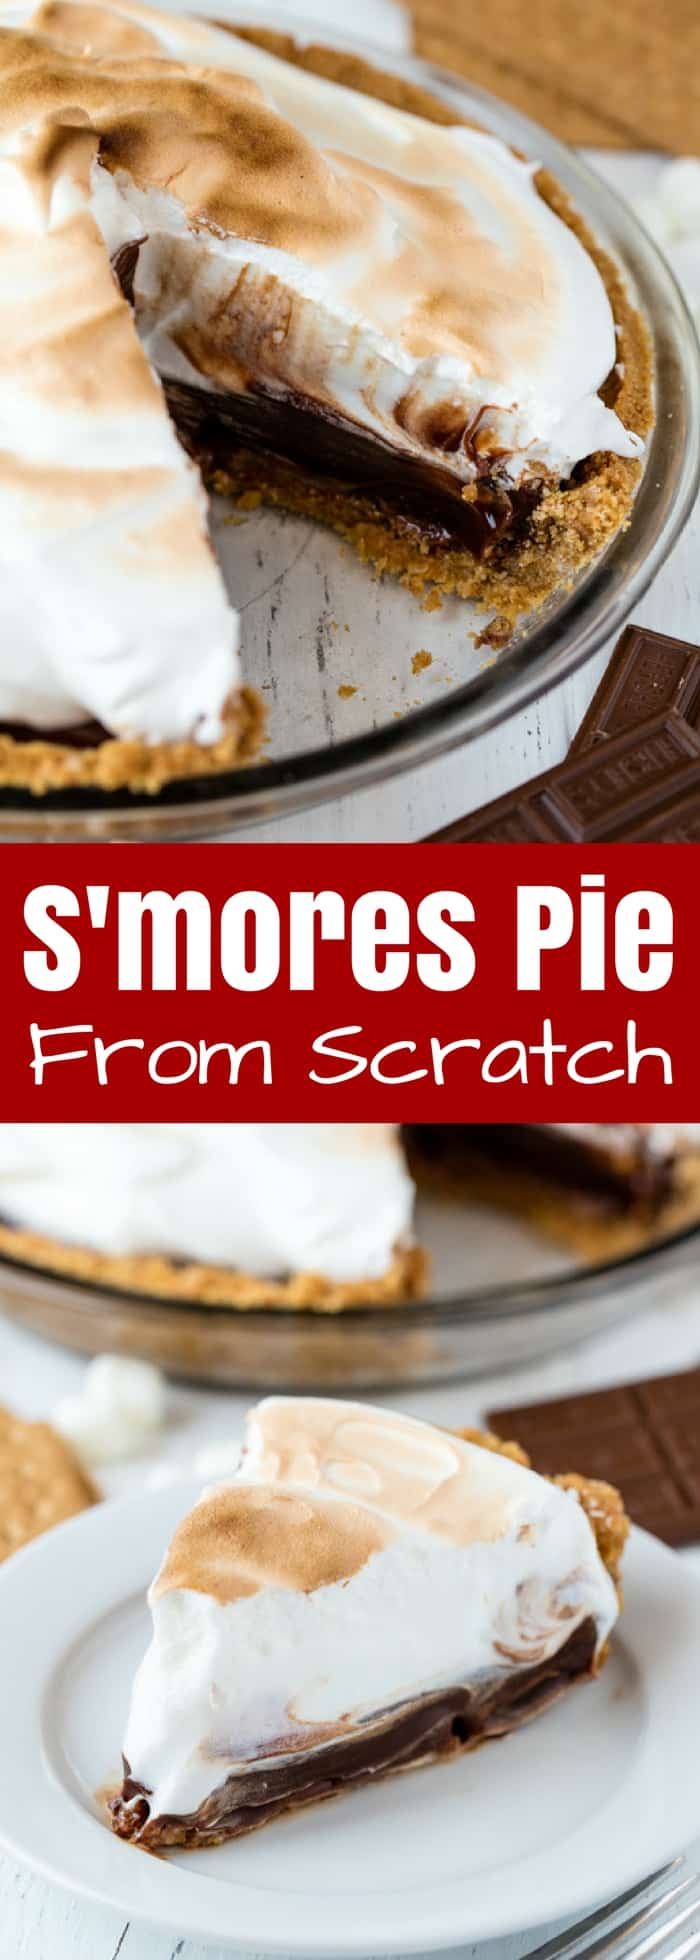 This S'mores Pie is made completely from scratch from the homemade graham cracker crust, to the hot fudge filling, to the finale sweet Italian meringue. It's decadent, rich, and absolutely delicious!